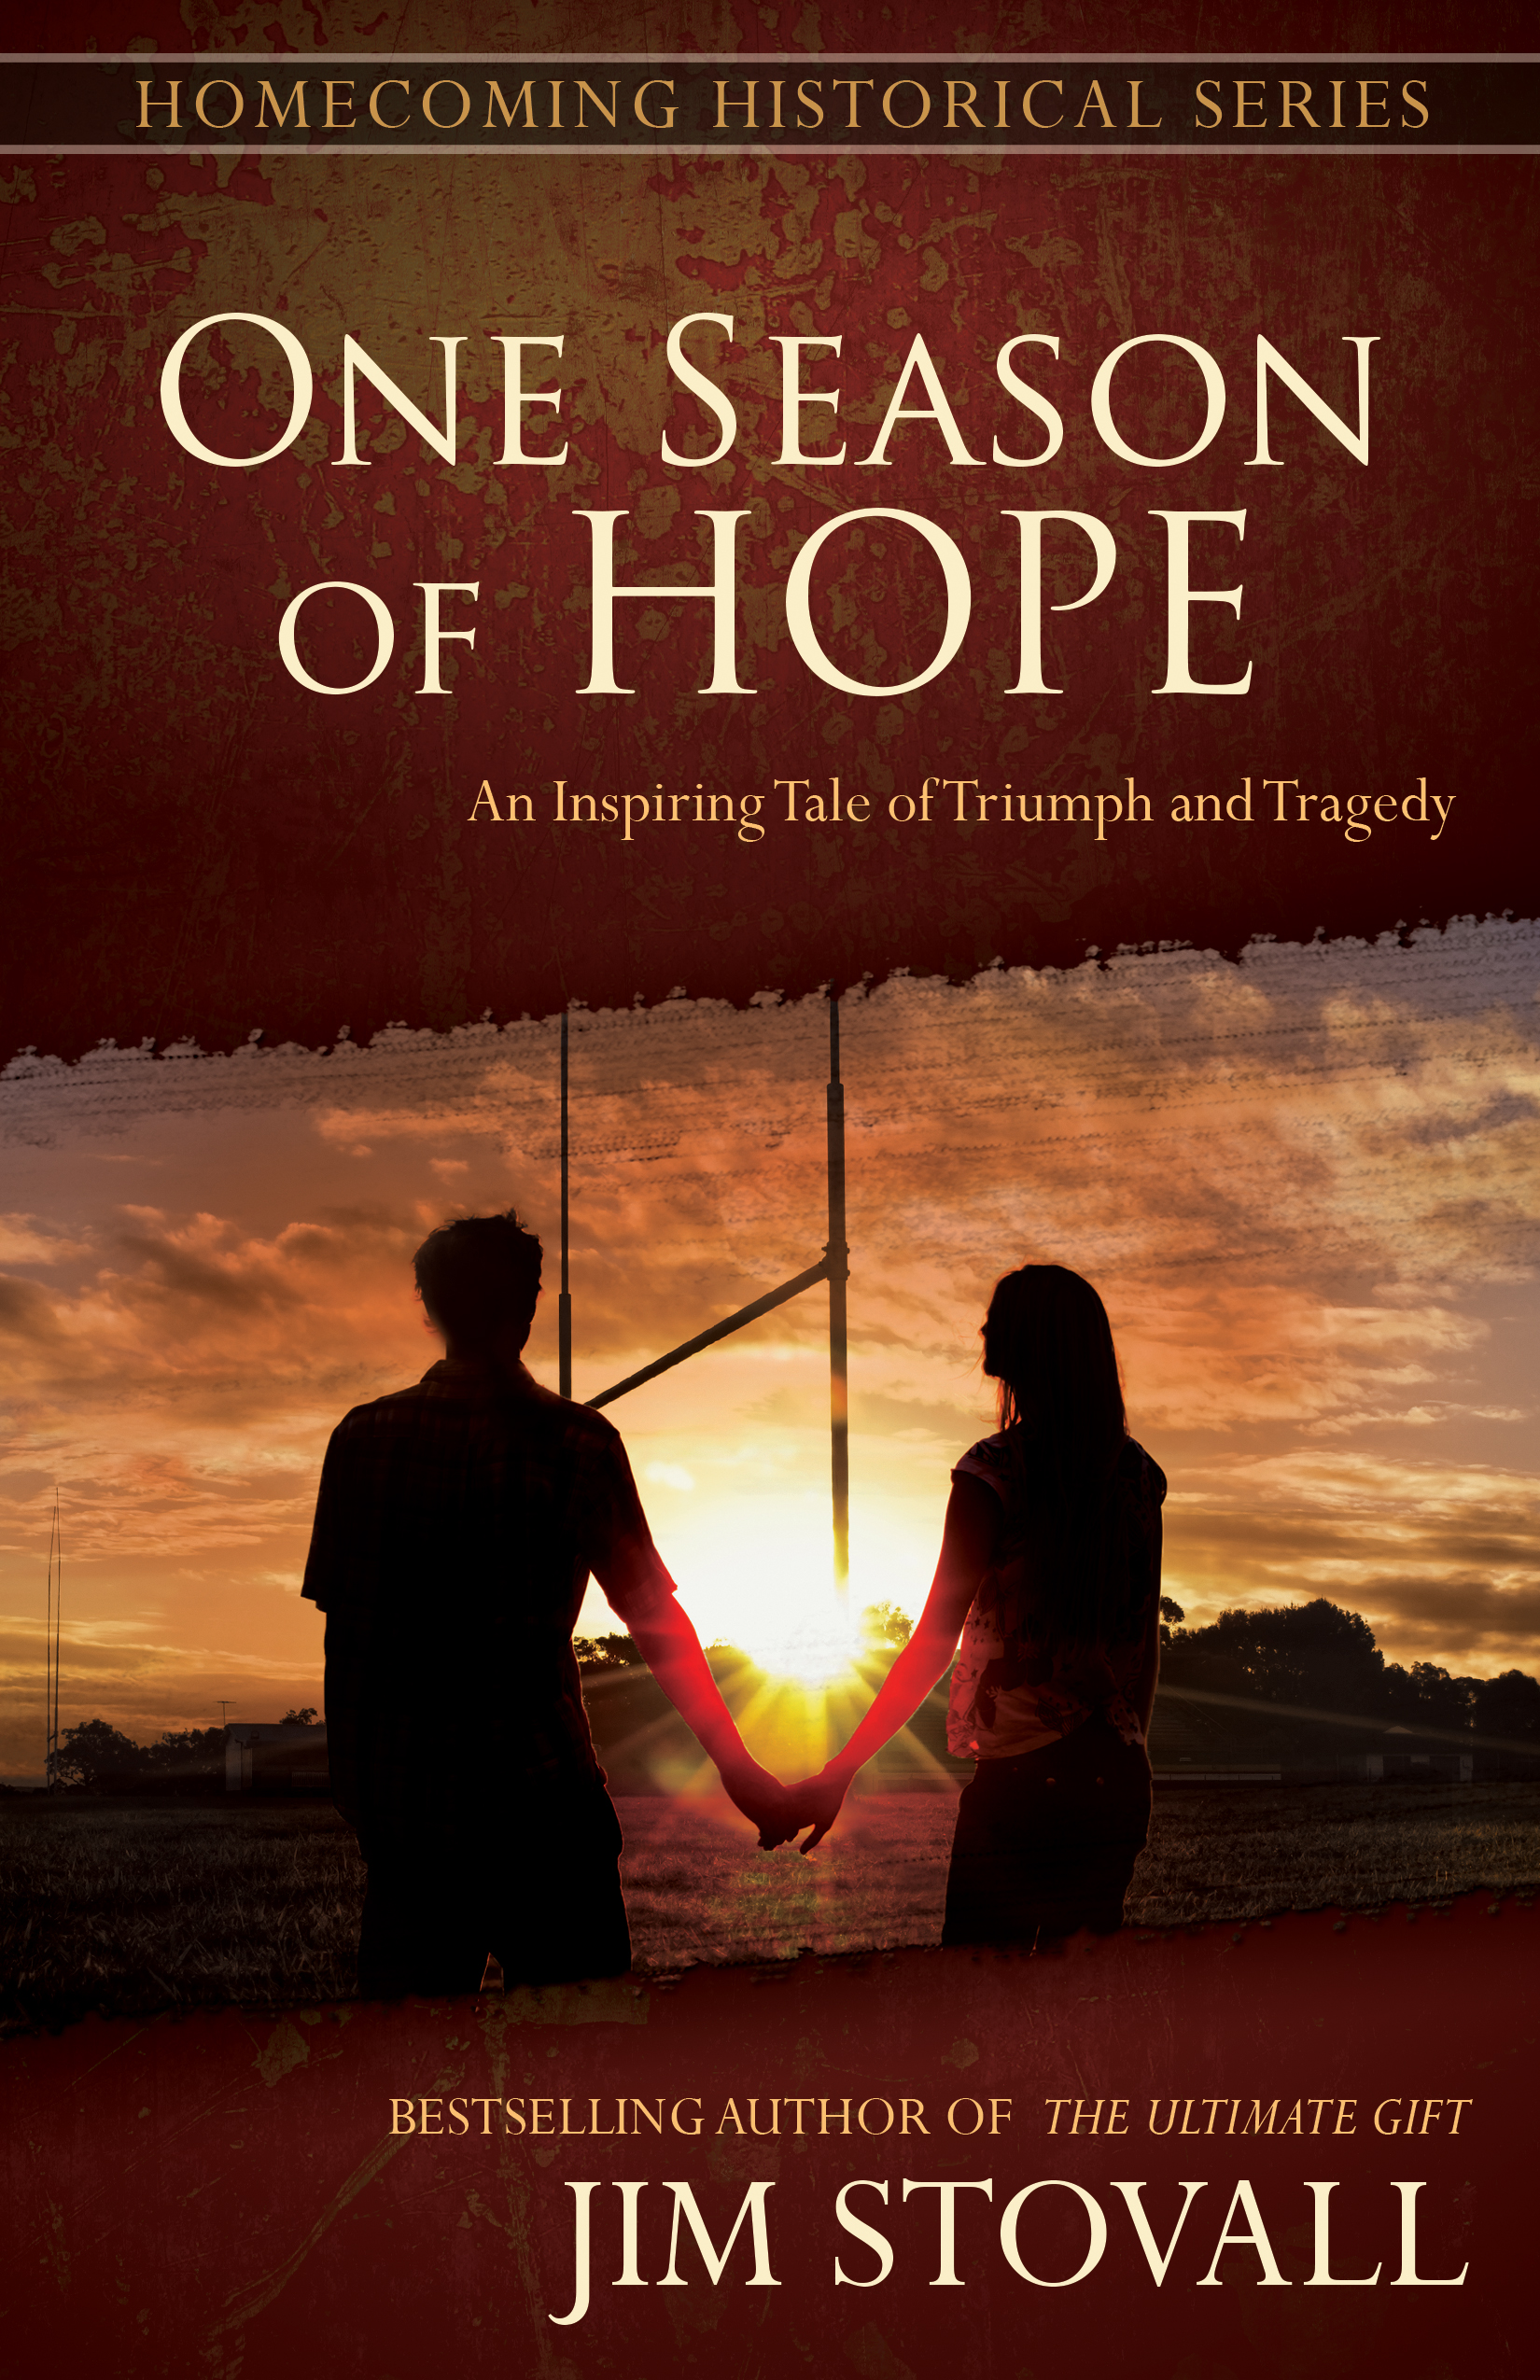 One Season of Hope - Jim Stovall